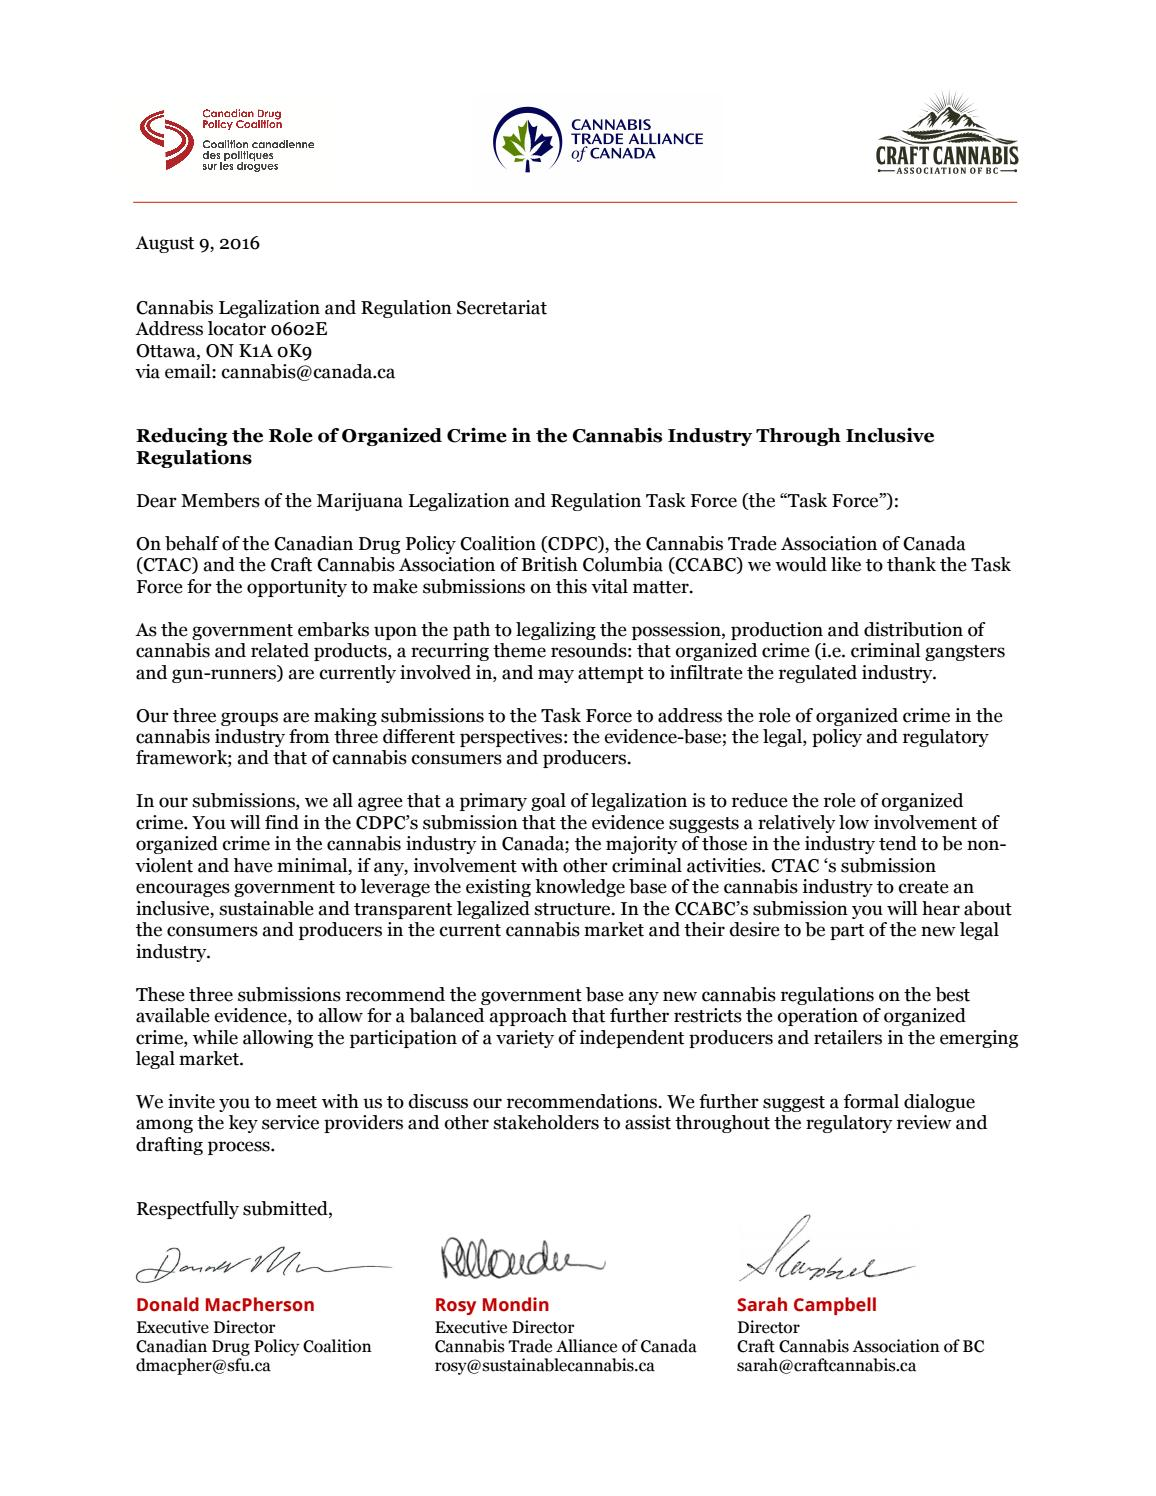 Cover Letter to Government of Canada\'s Task Force on ...